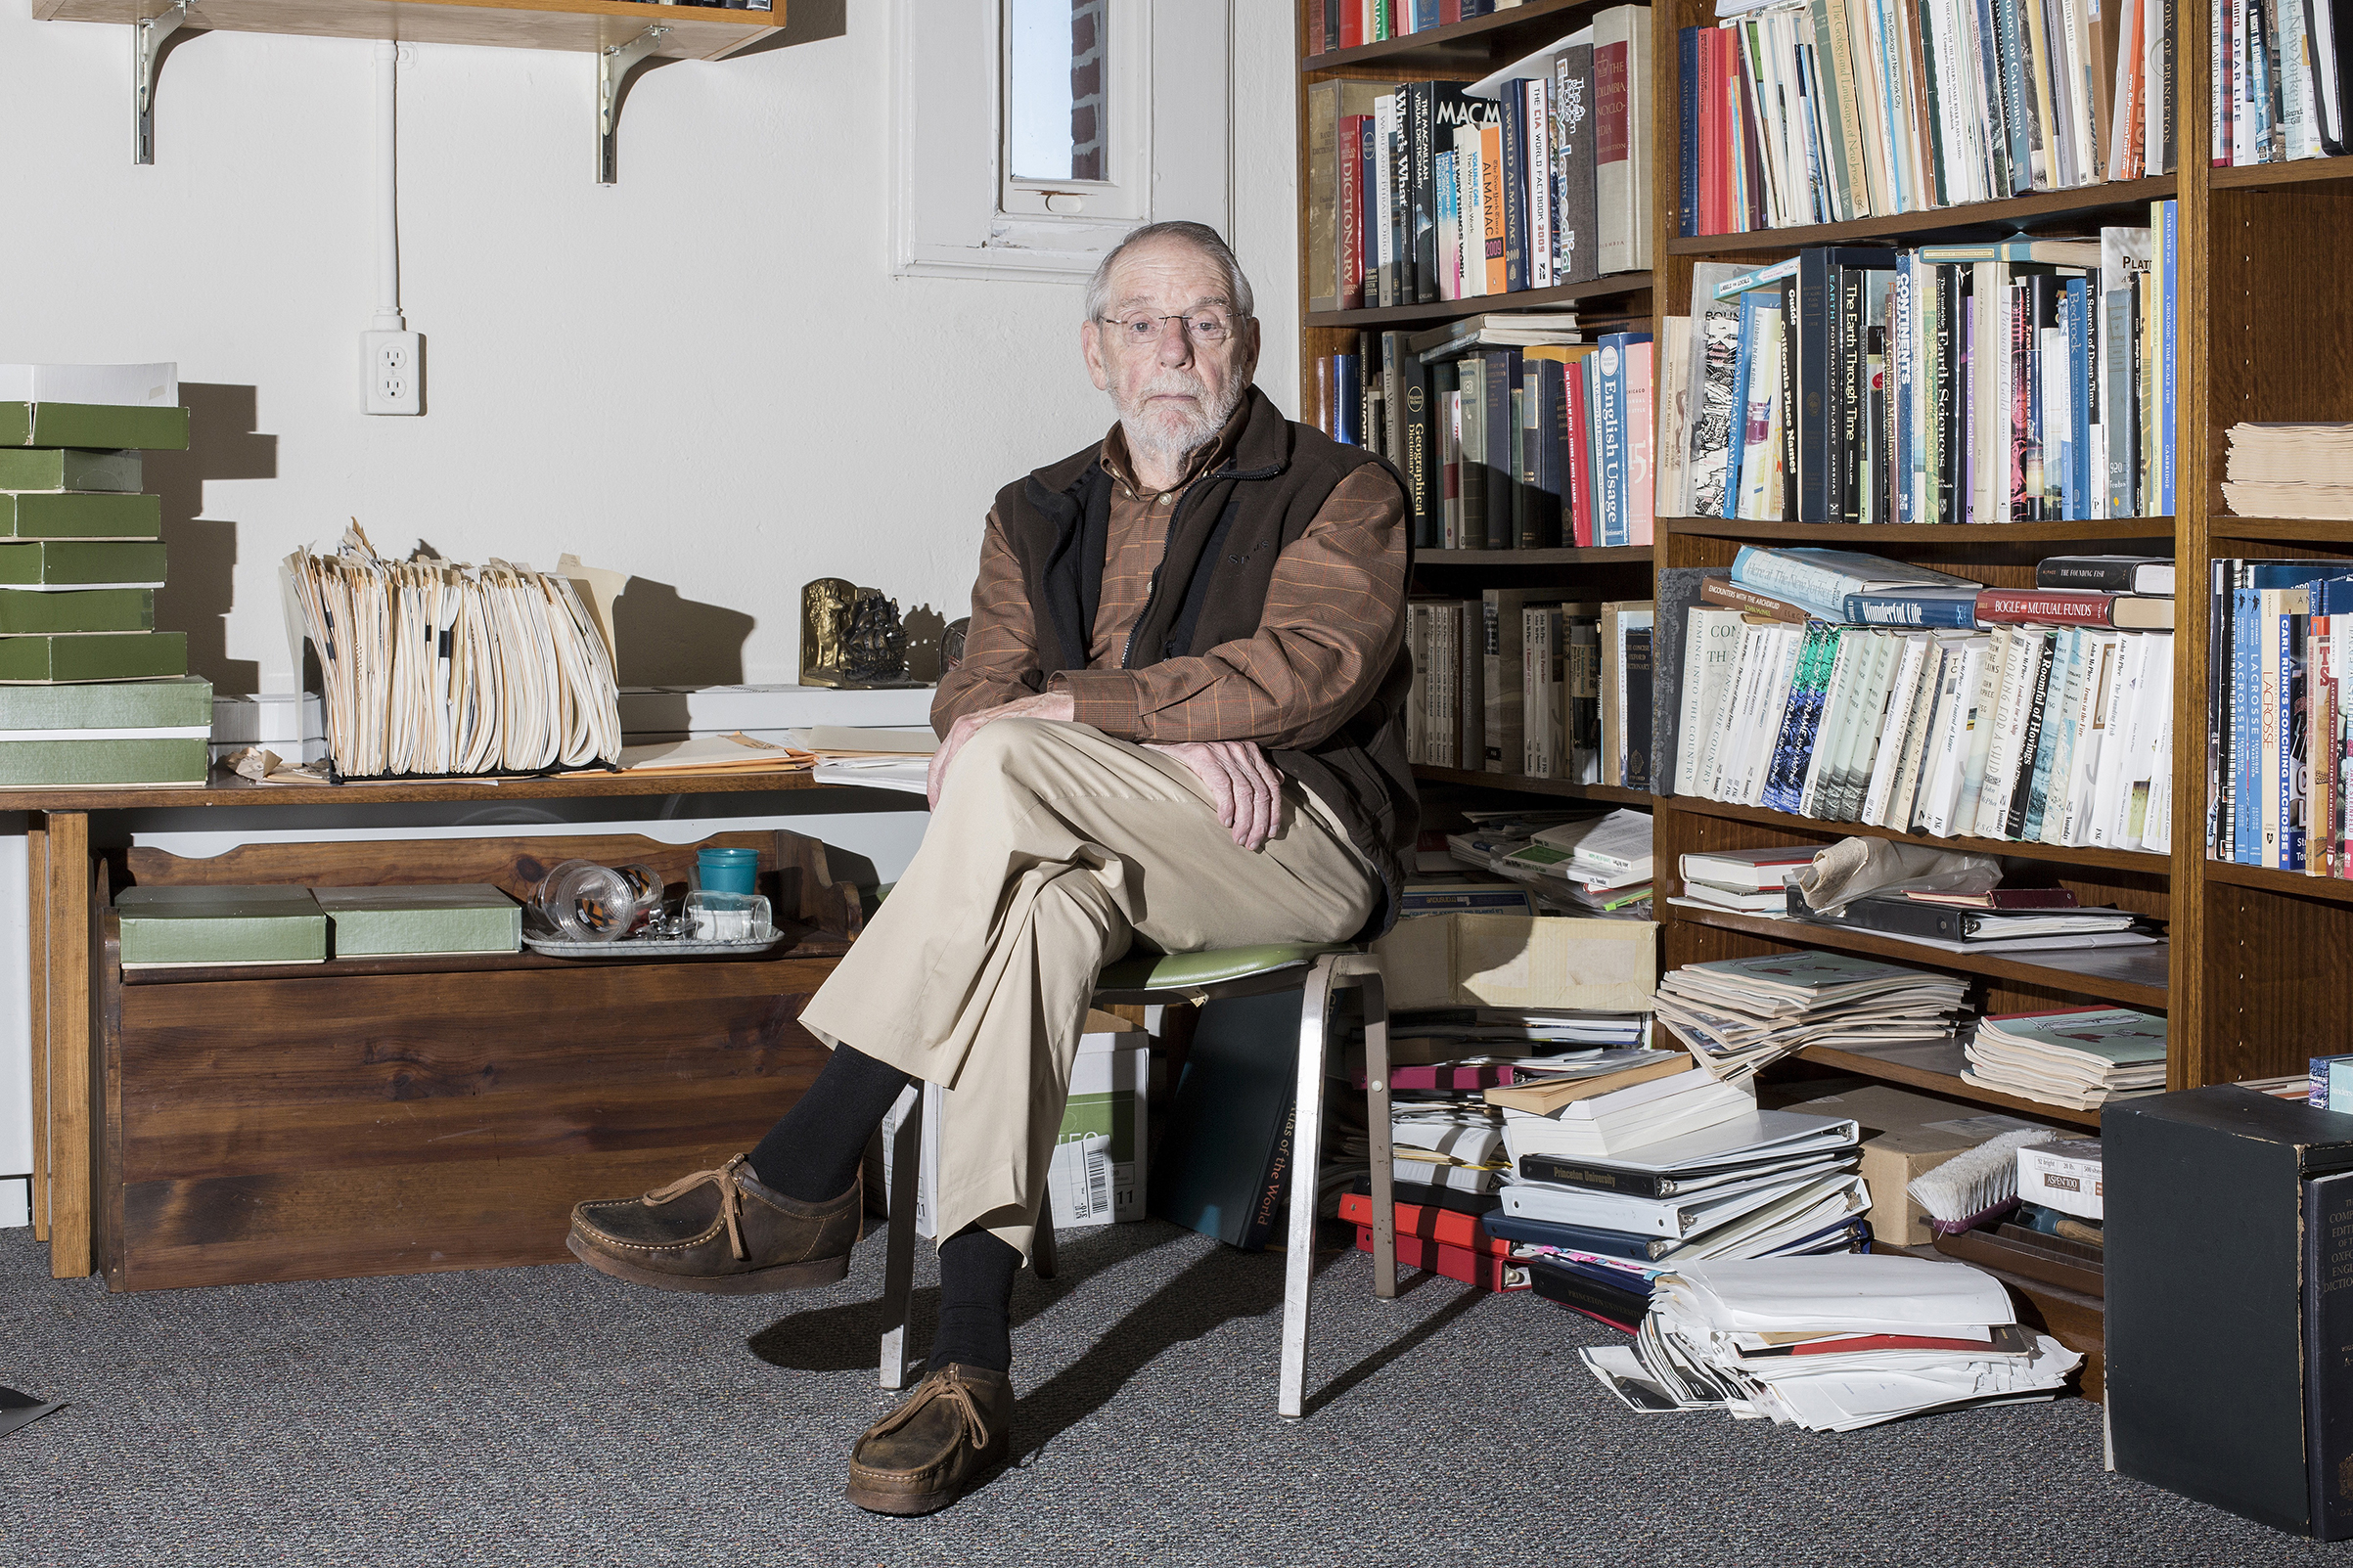 Writer John McPhee poses for a portrait in his office at Princeton University in Princeton, N.J.